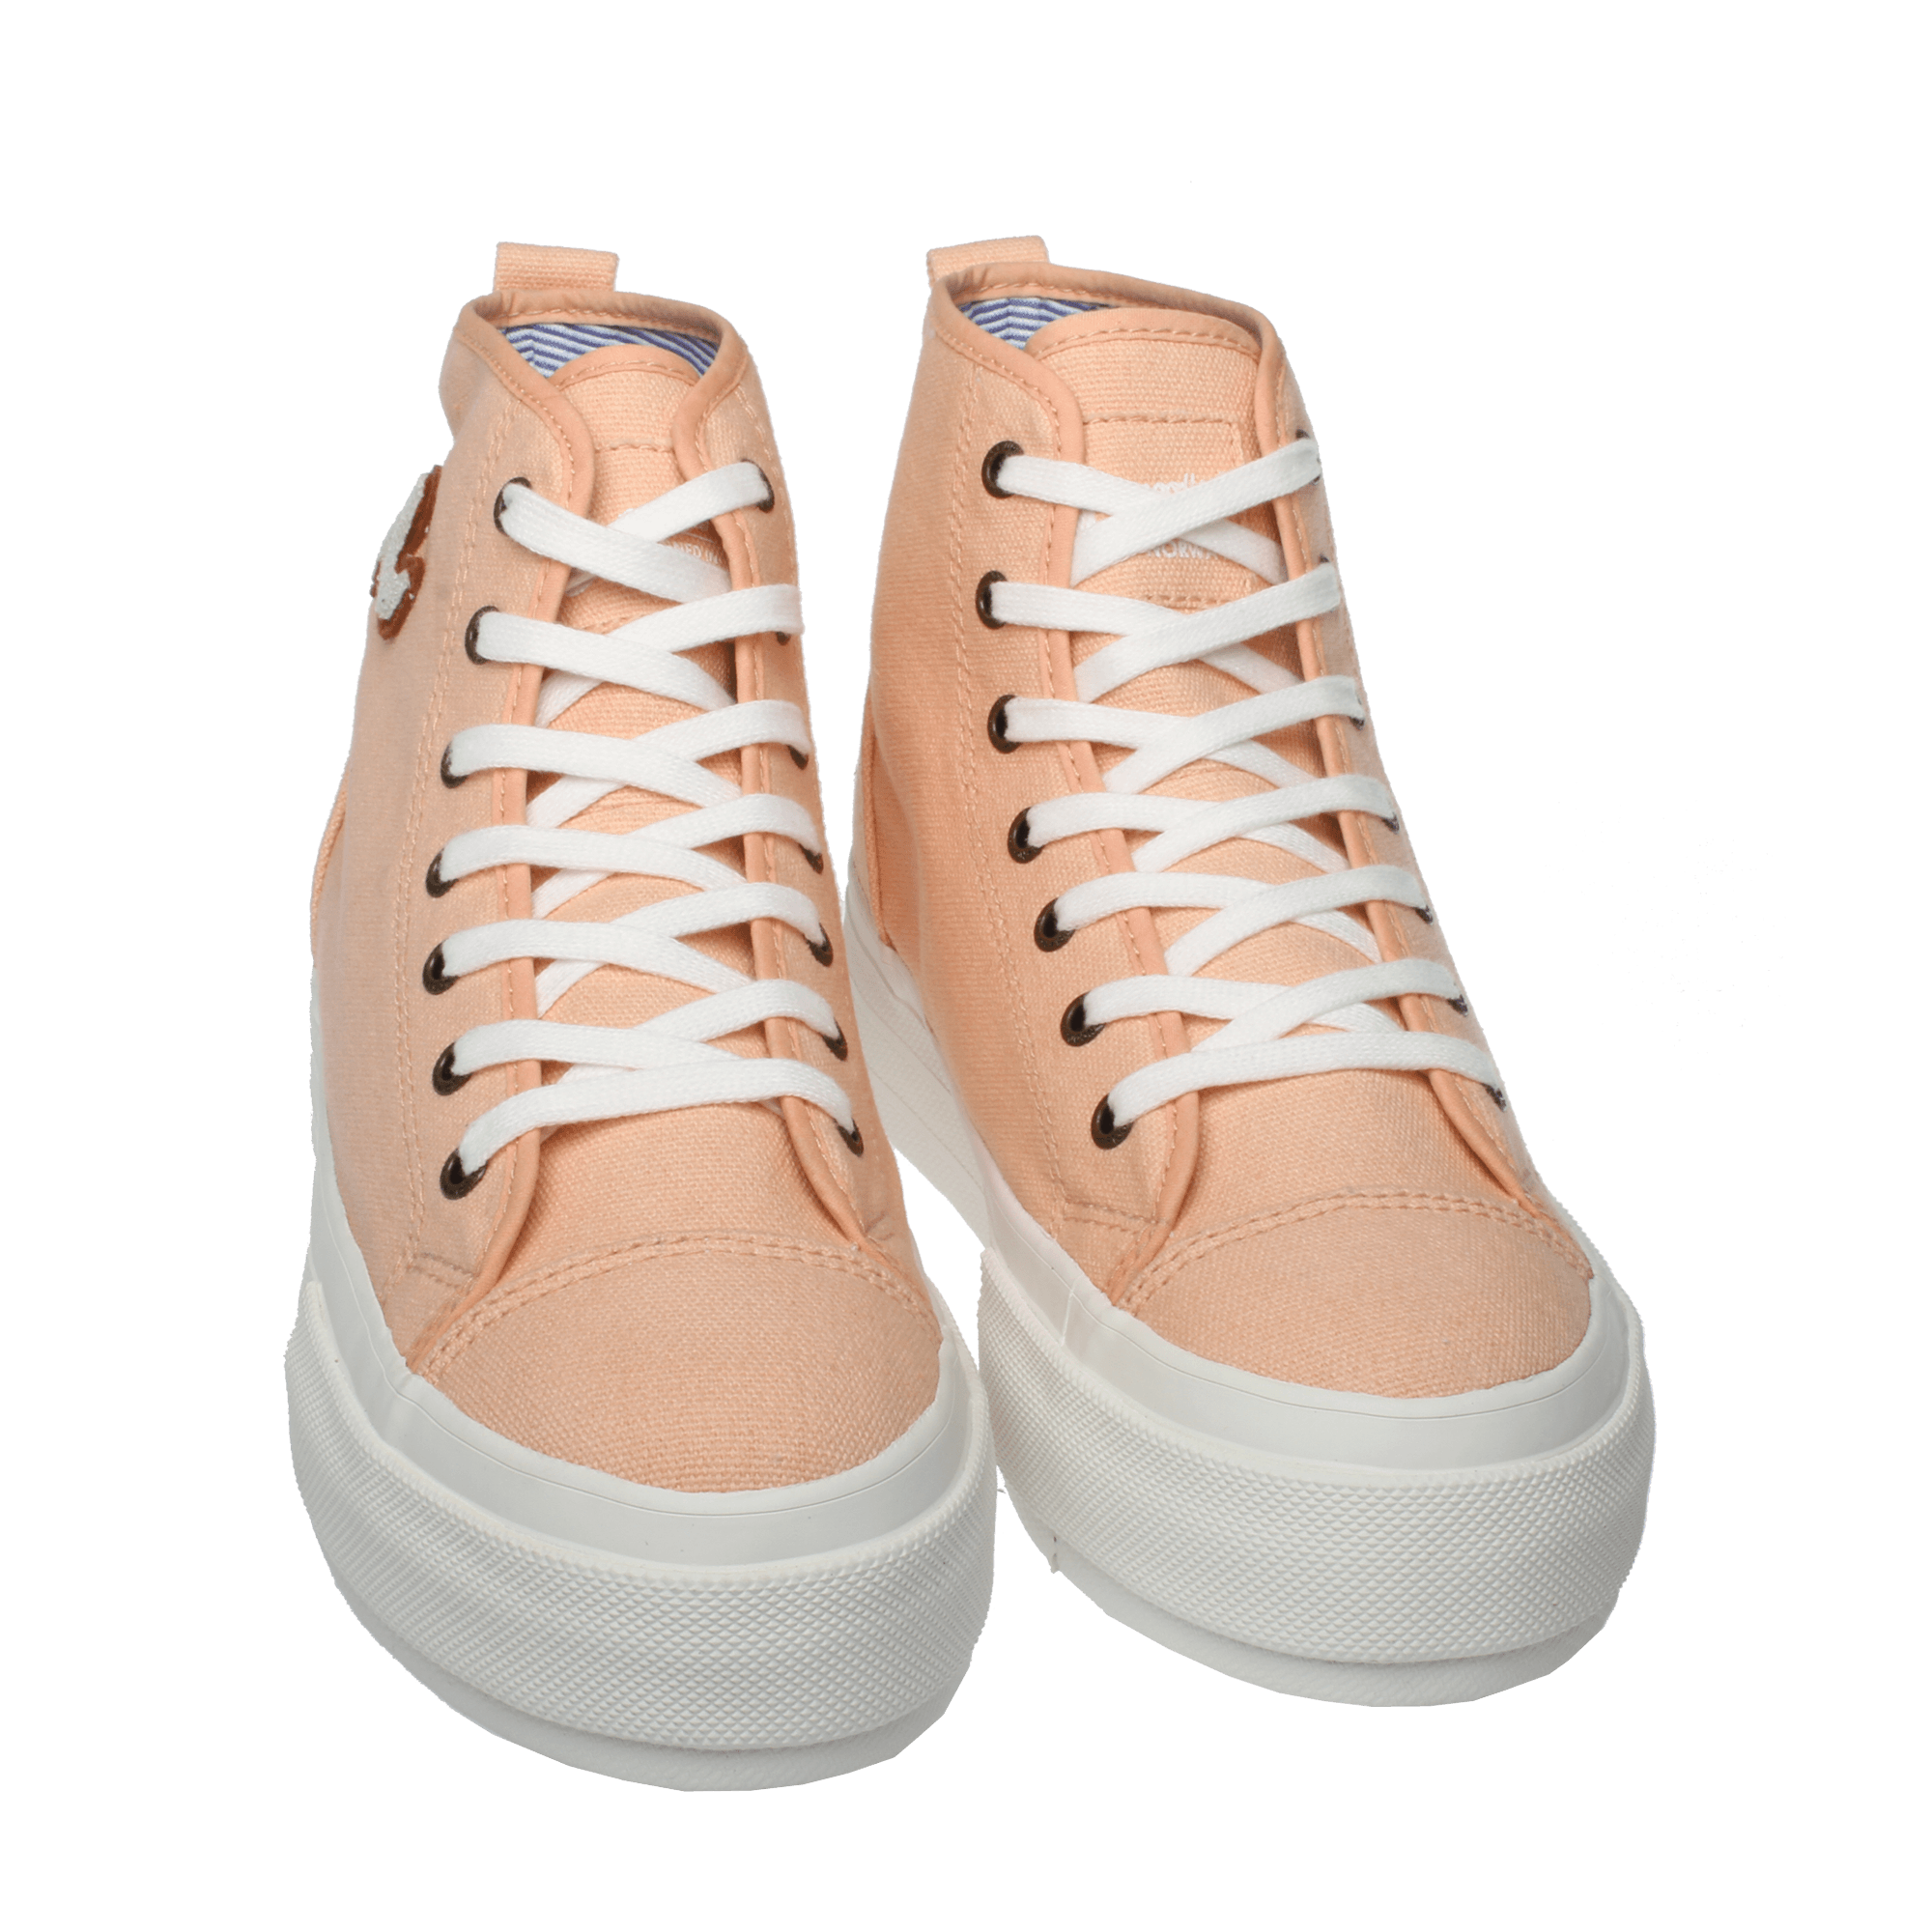 Flatform hightops salmon pink